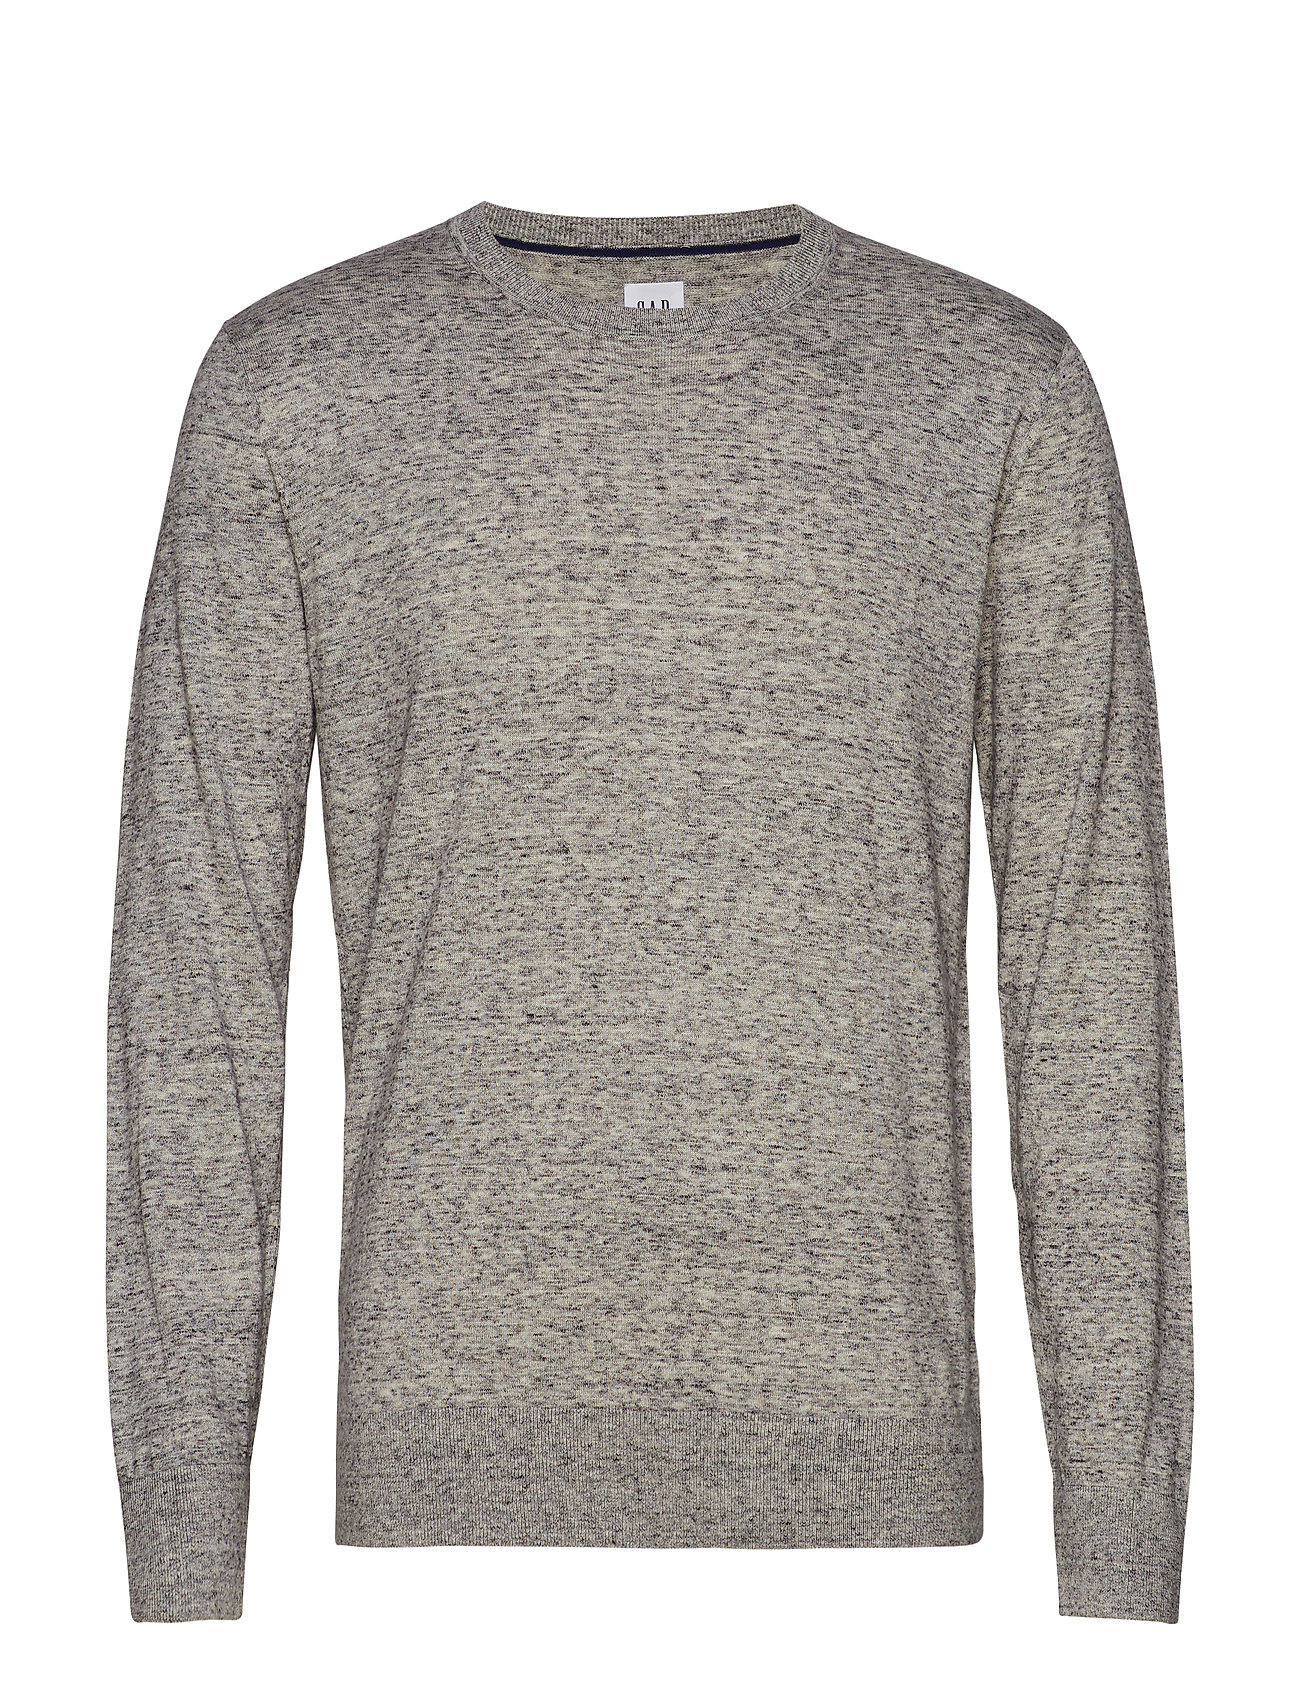 GAP Mainstay Crewneck Sweater - HEATHER GREY